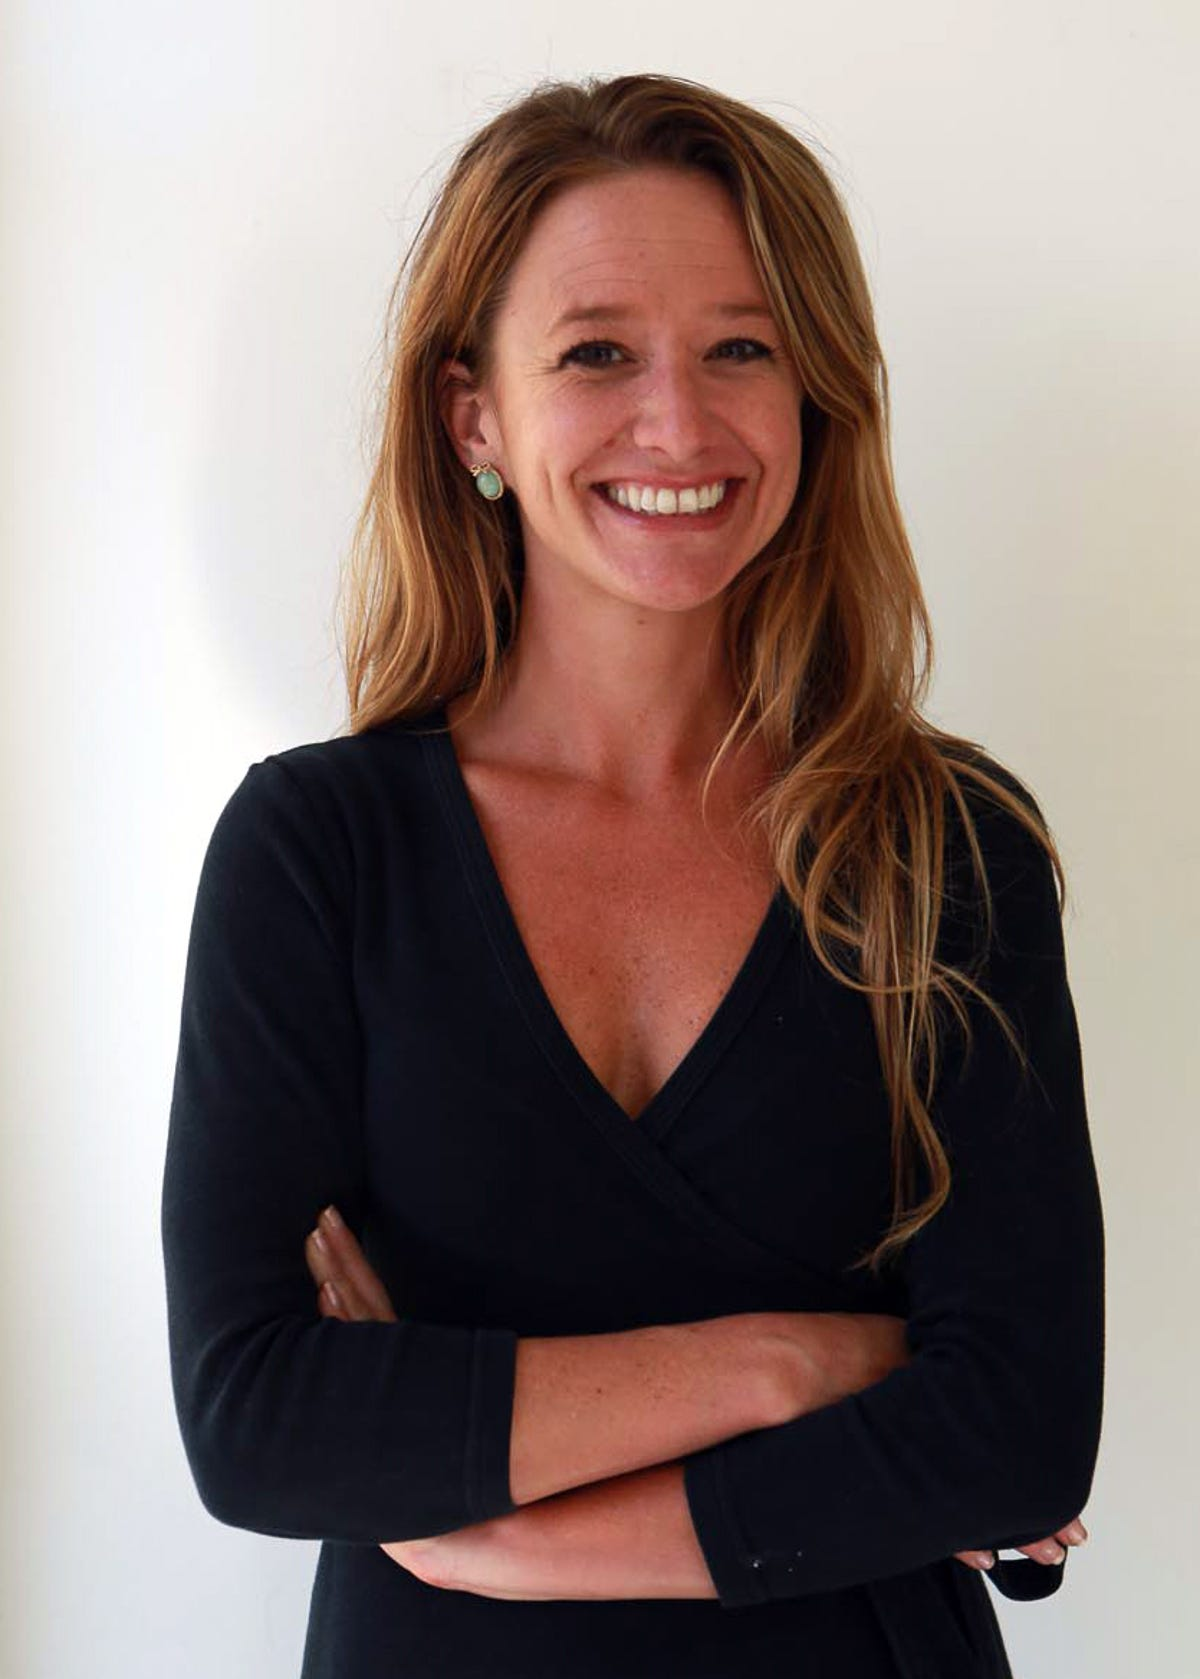 Oxnard hires Katie Casey as communications manager